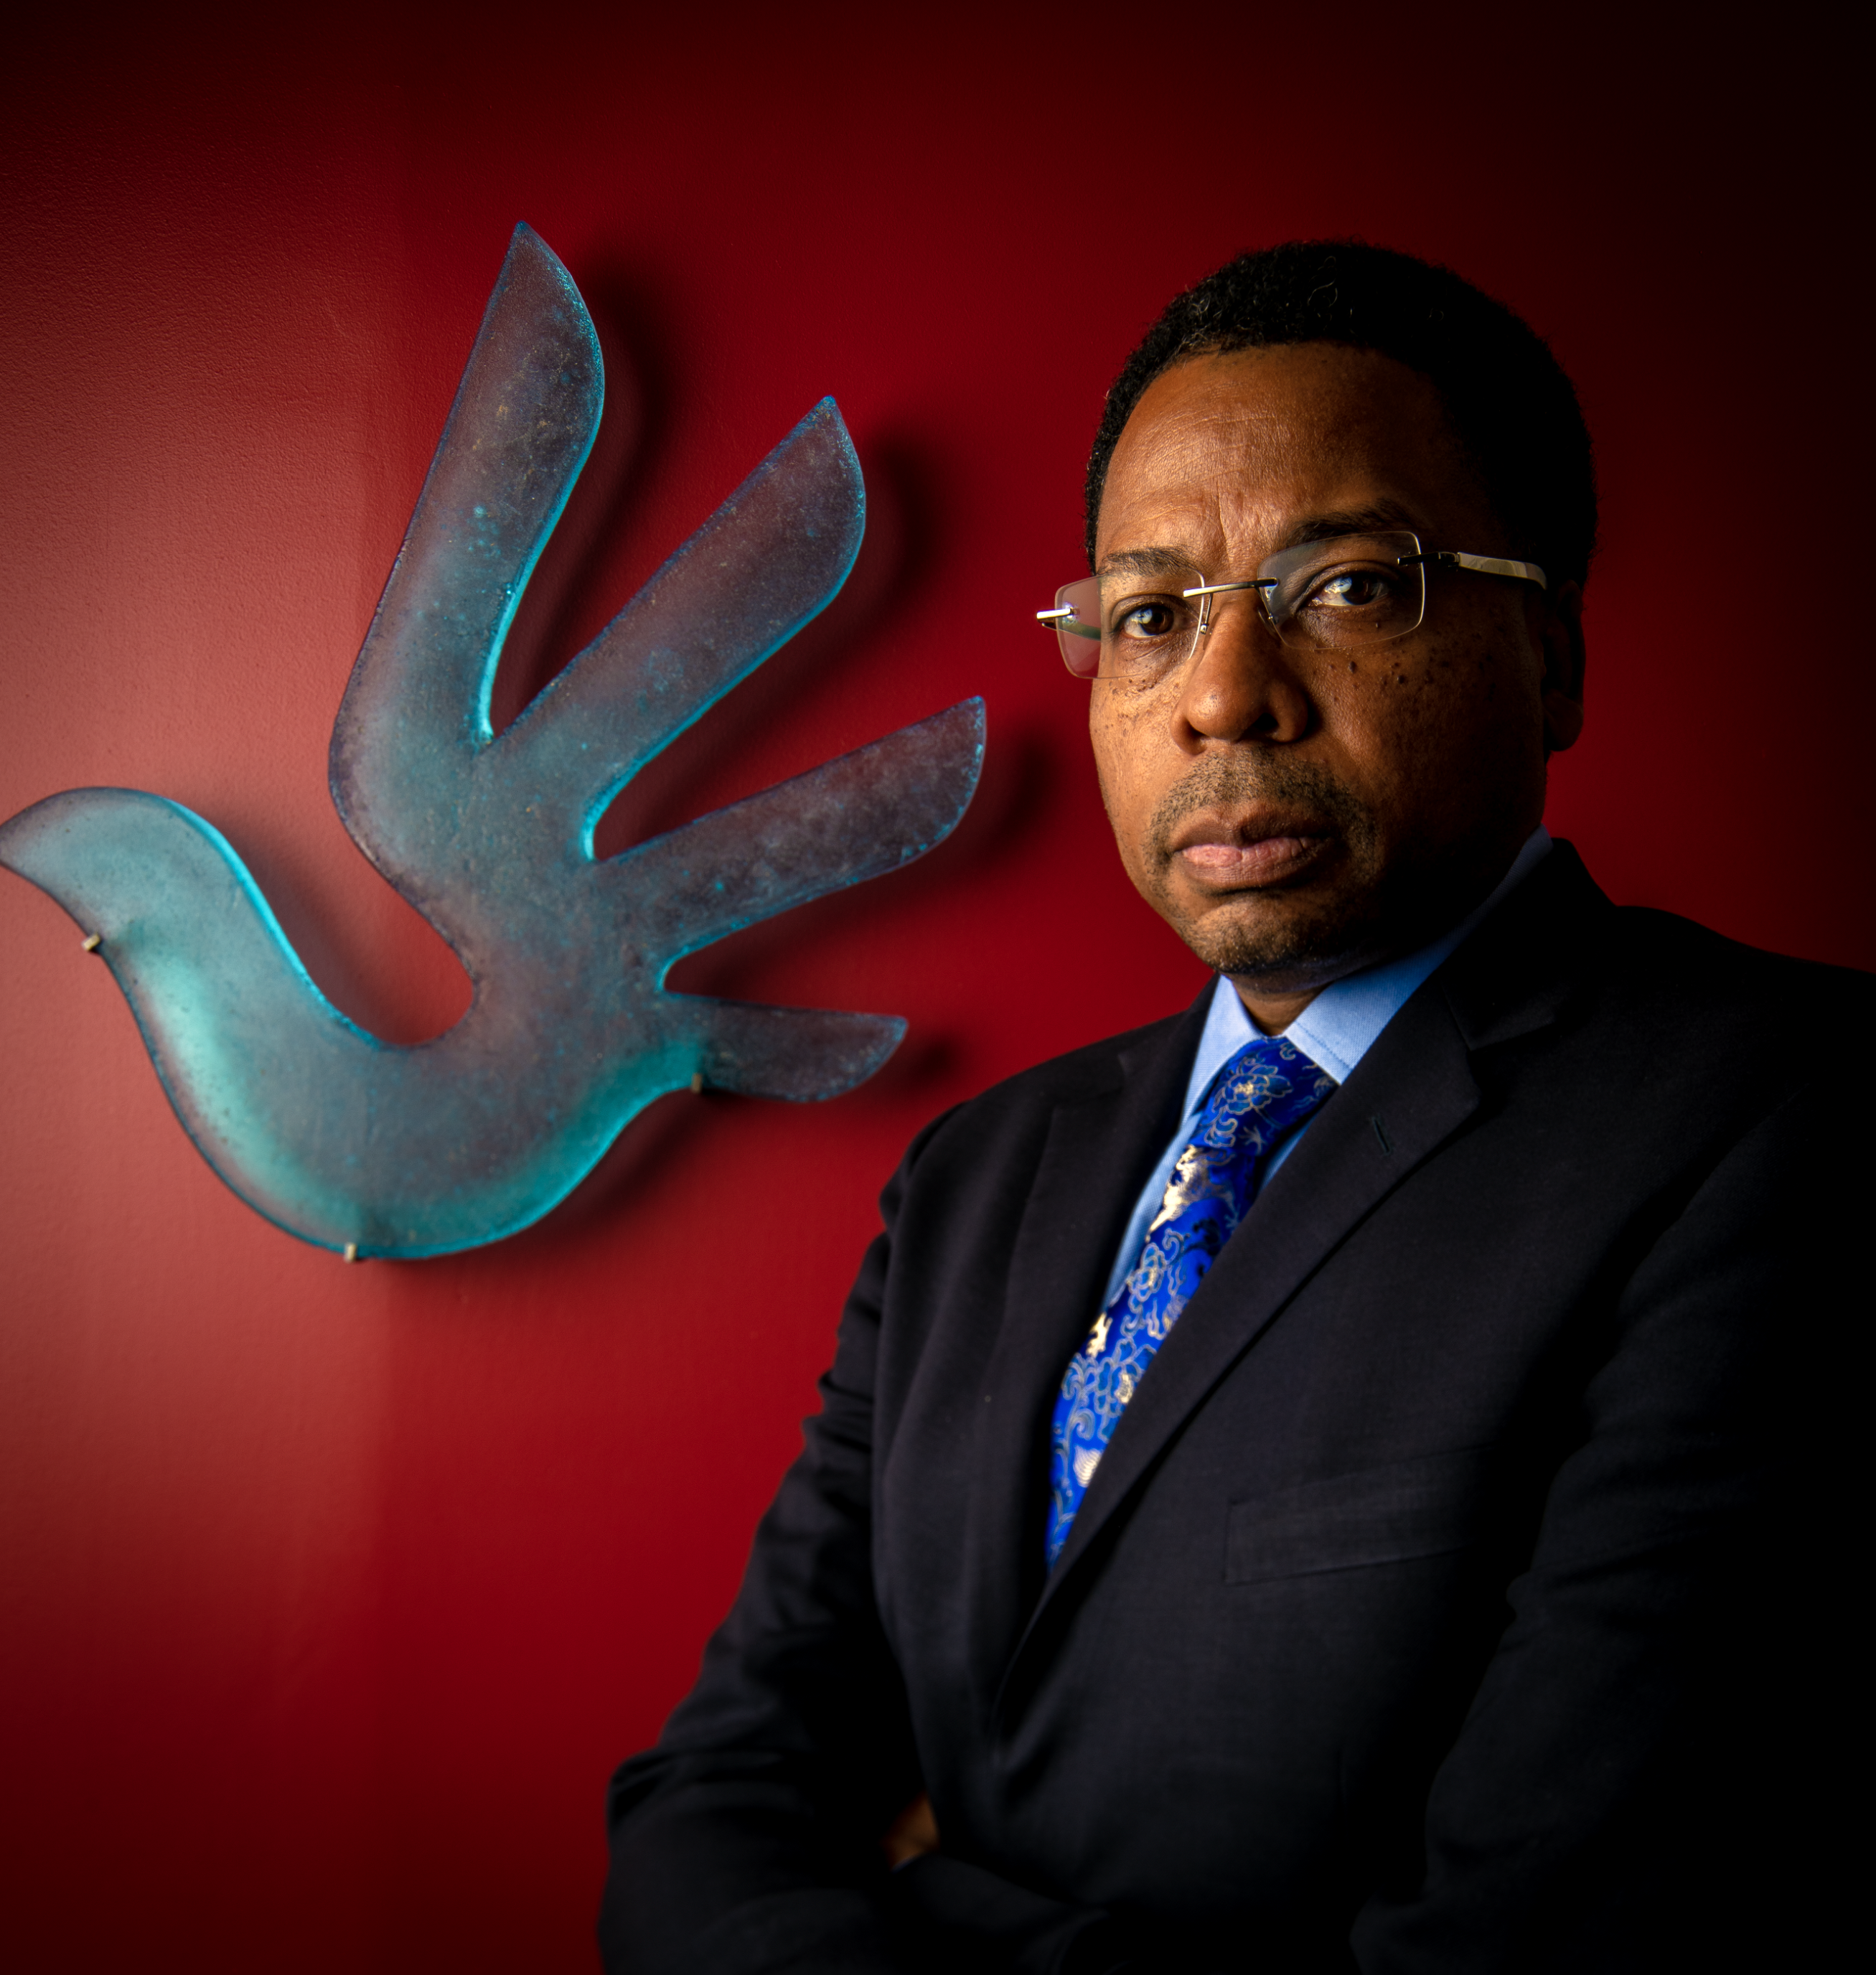 Atlanta Human Rights Lawyer Fights For The Disenfranchised And Wins